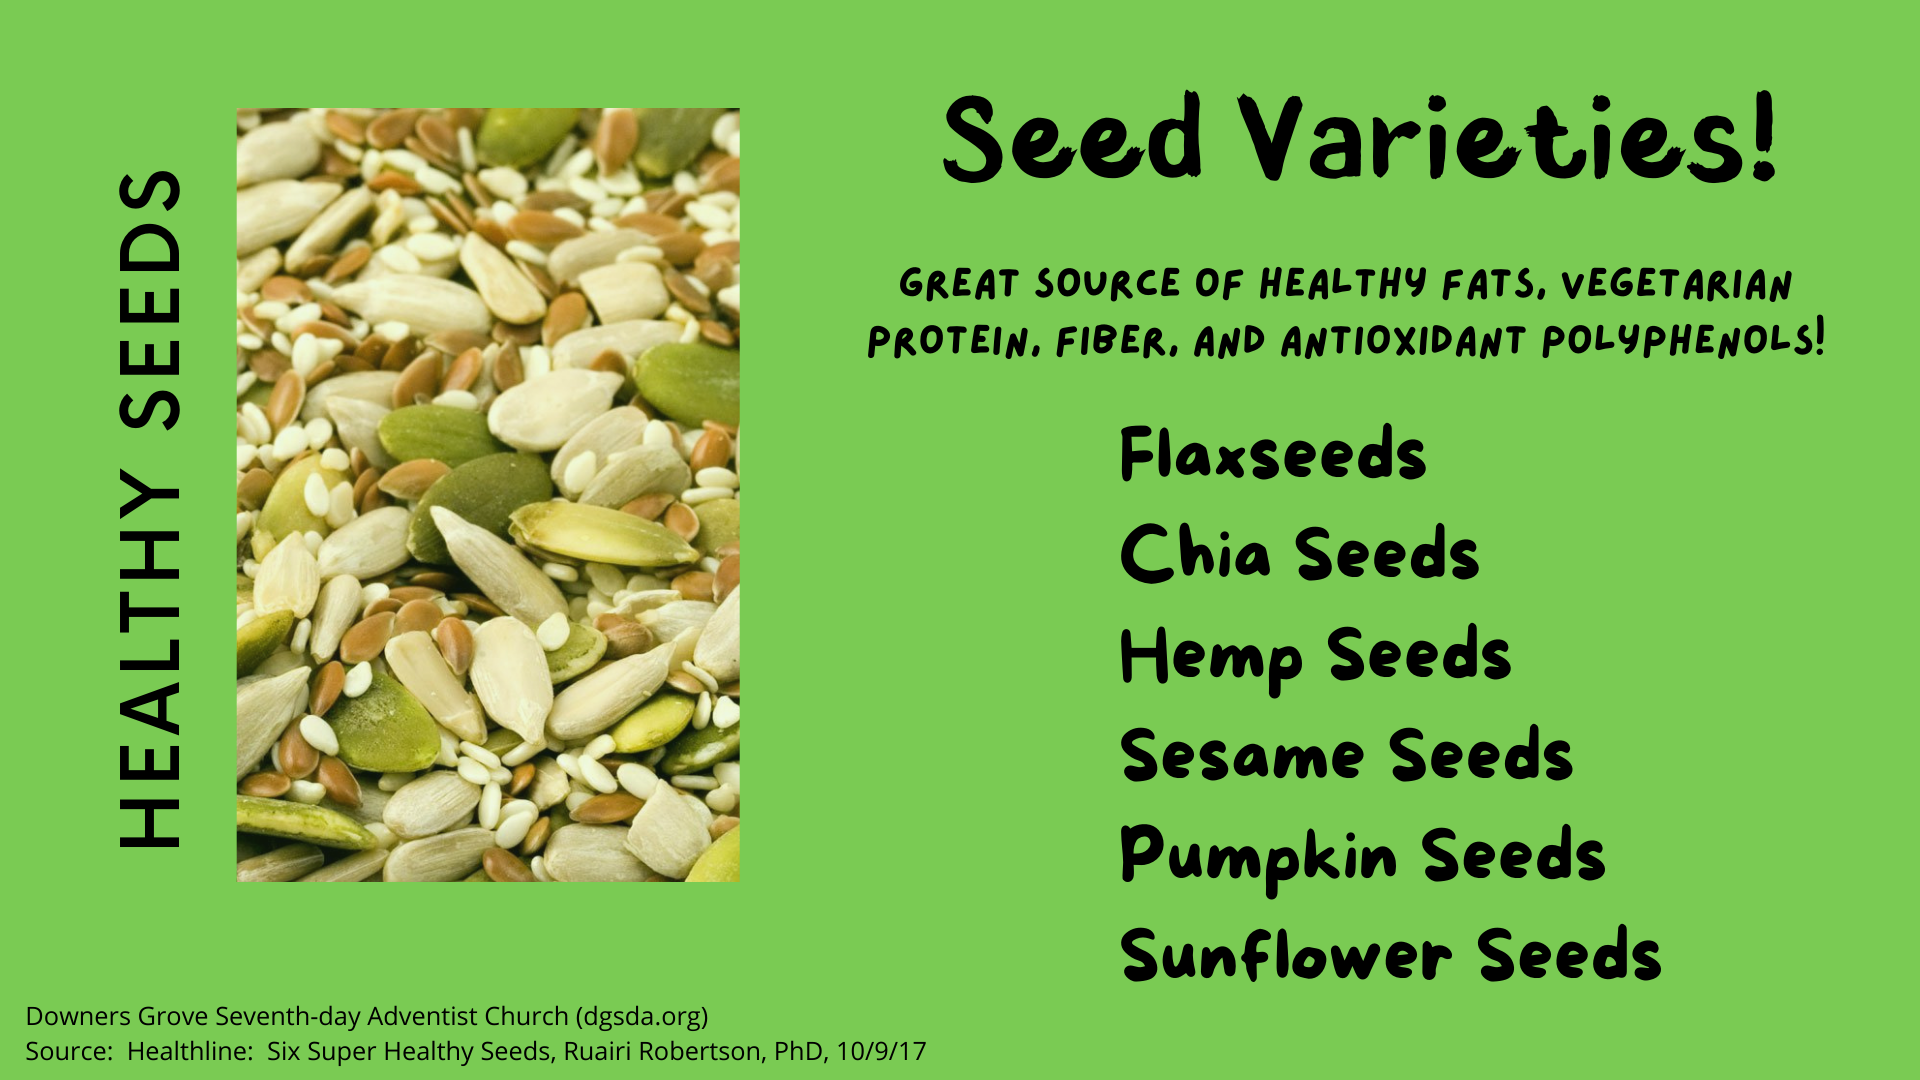 Kinds of Seeds to Eat